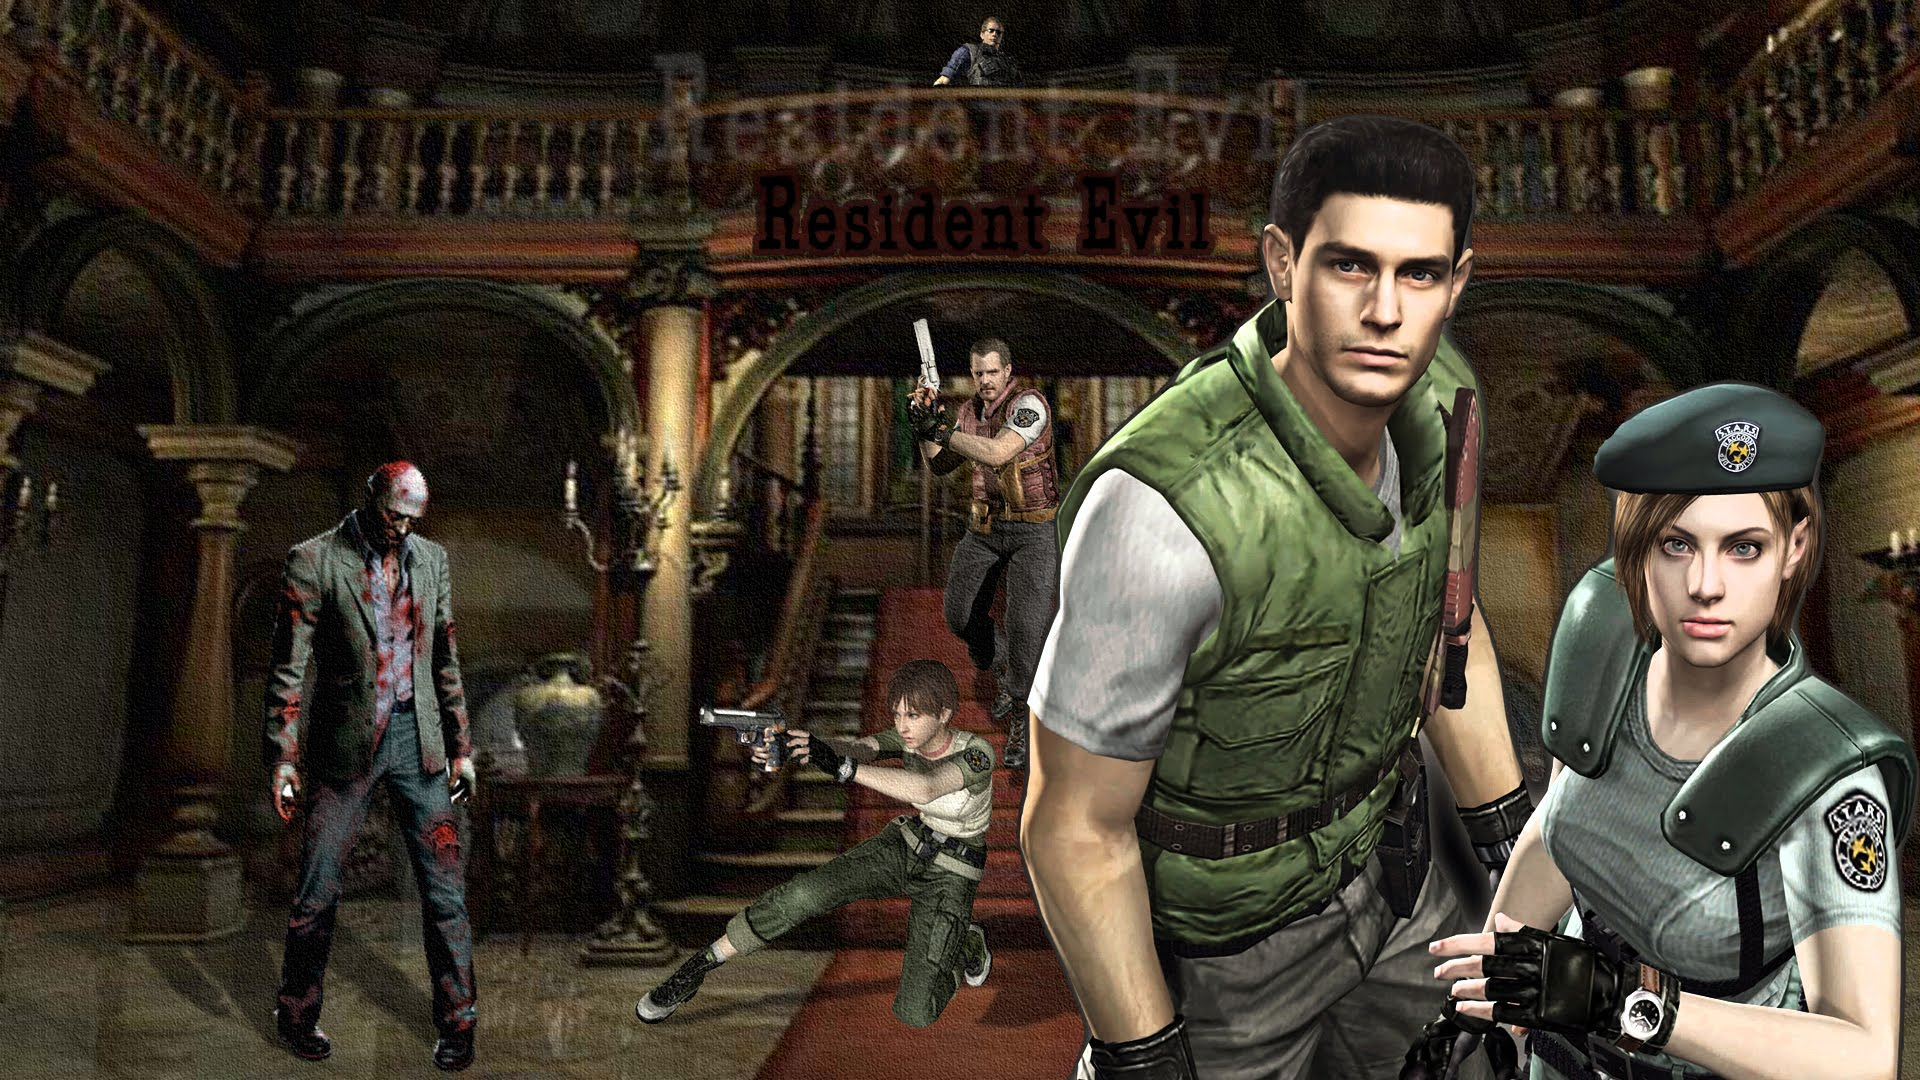 'Resident Evil' 20th Anniversary Winners